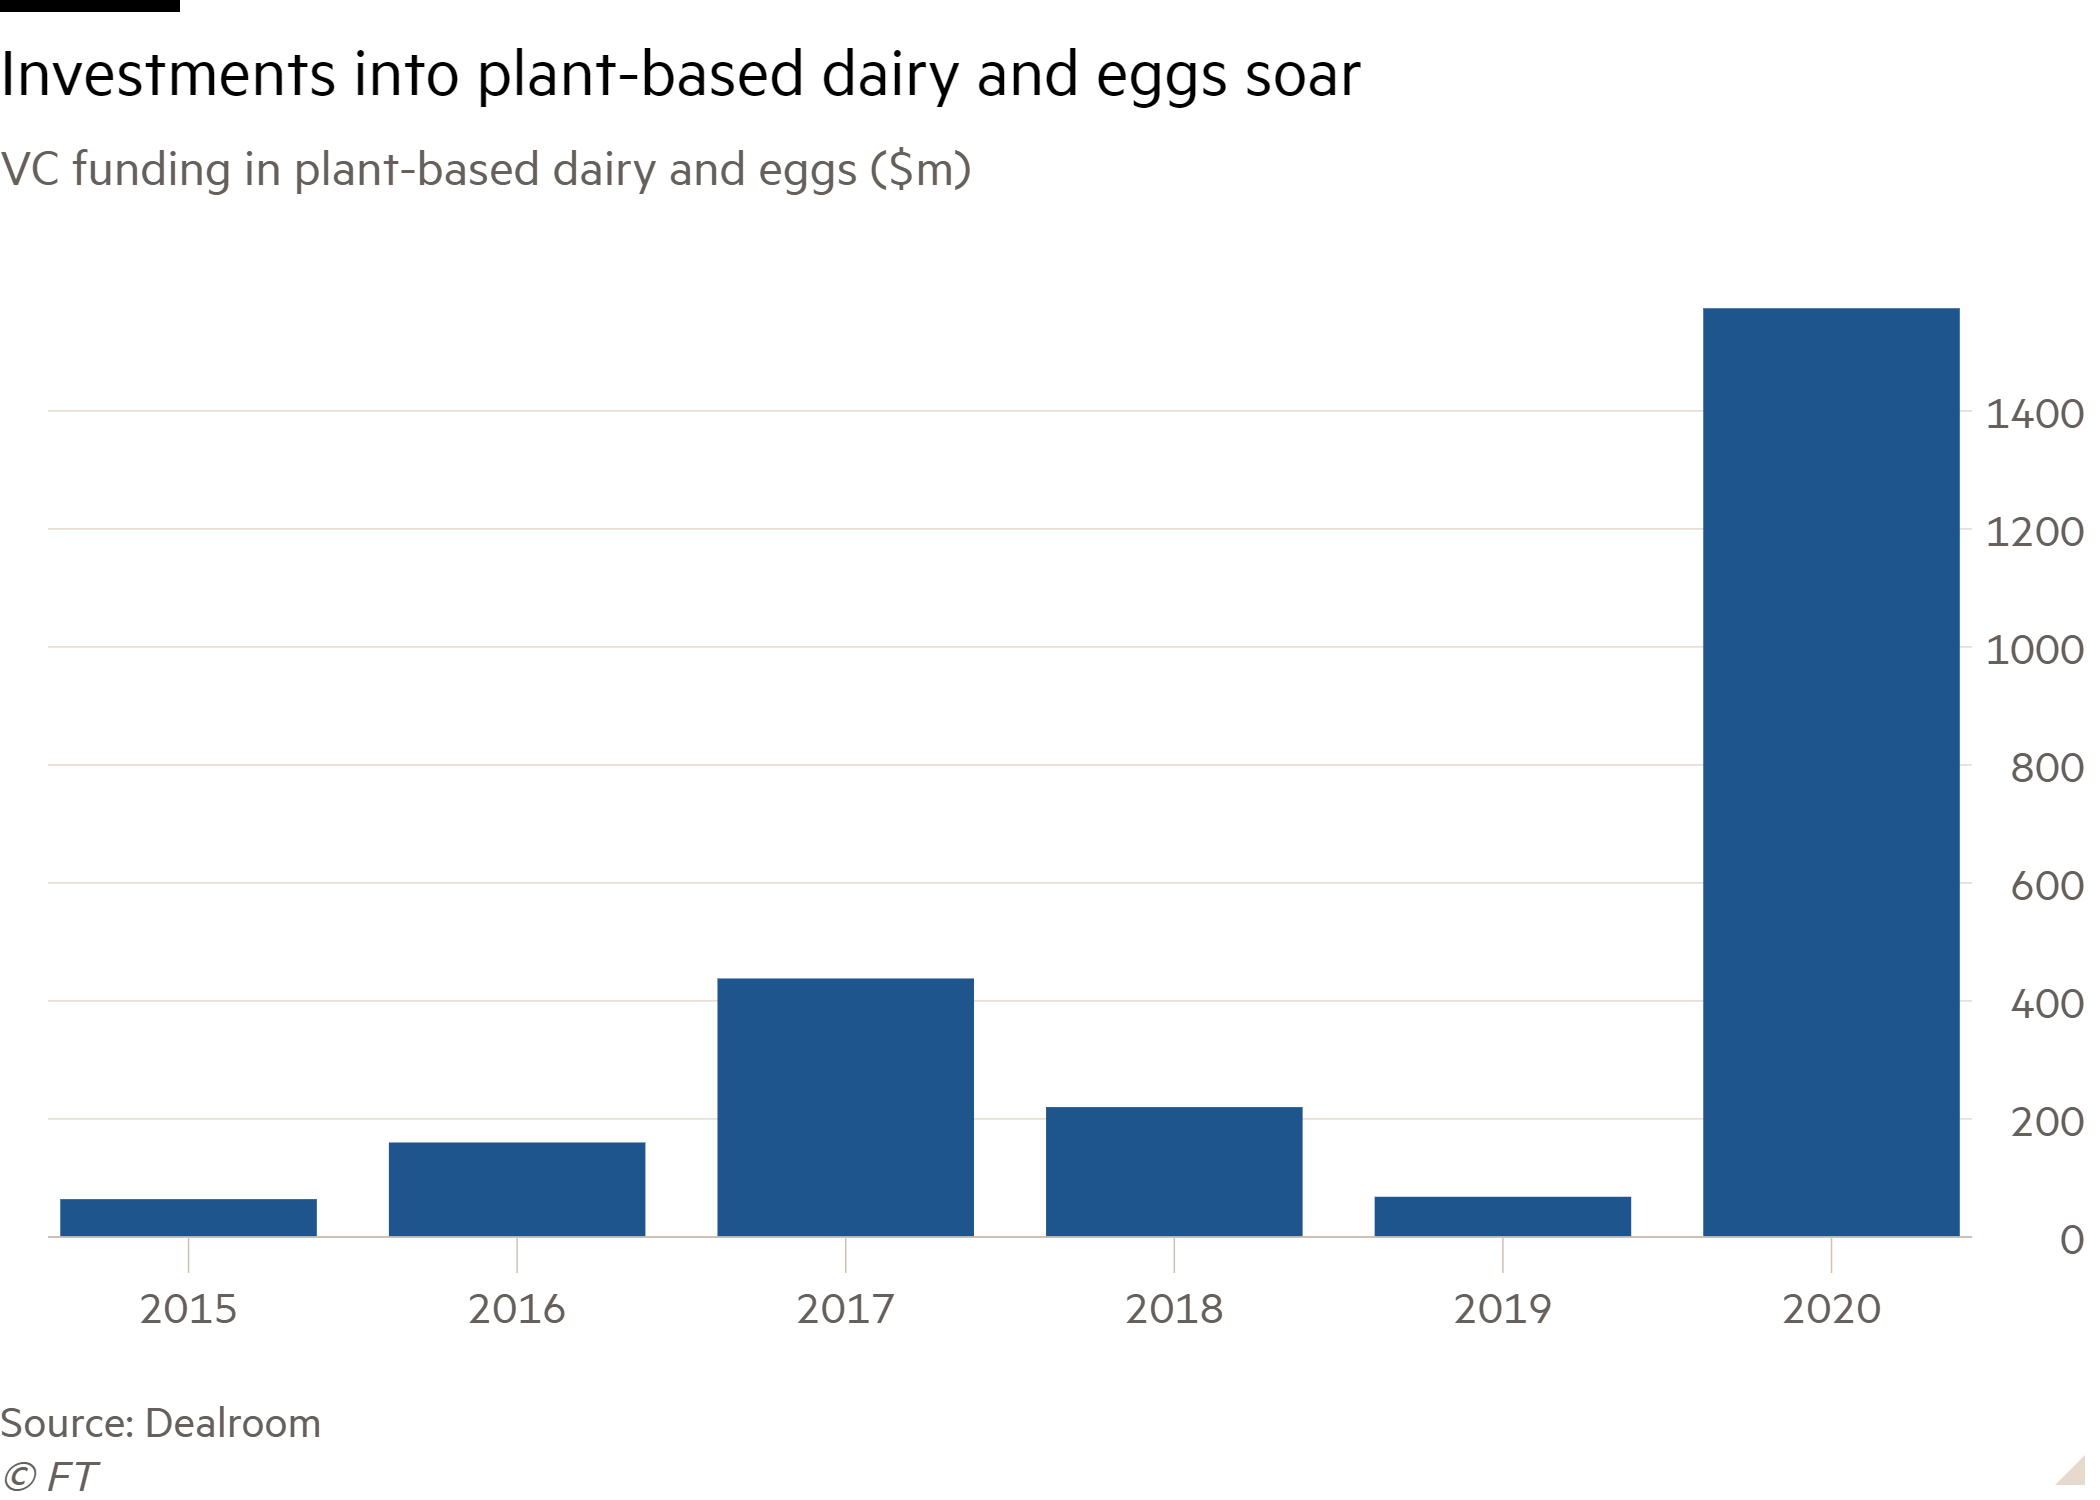 Column chart of VC funding in plant-based dairy and eggs ($m) showing Investments into plant-based dairy and eggs soar